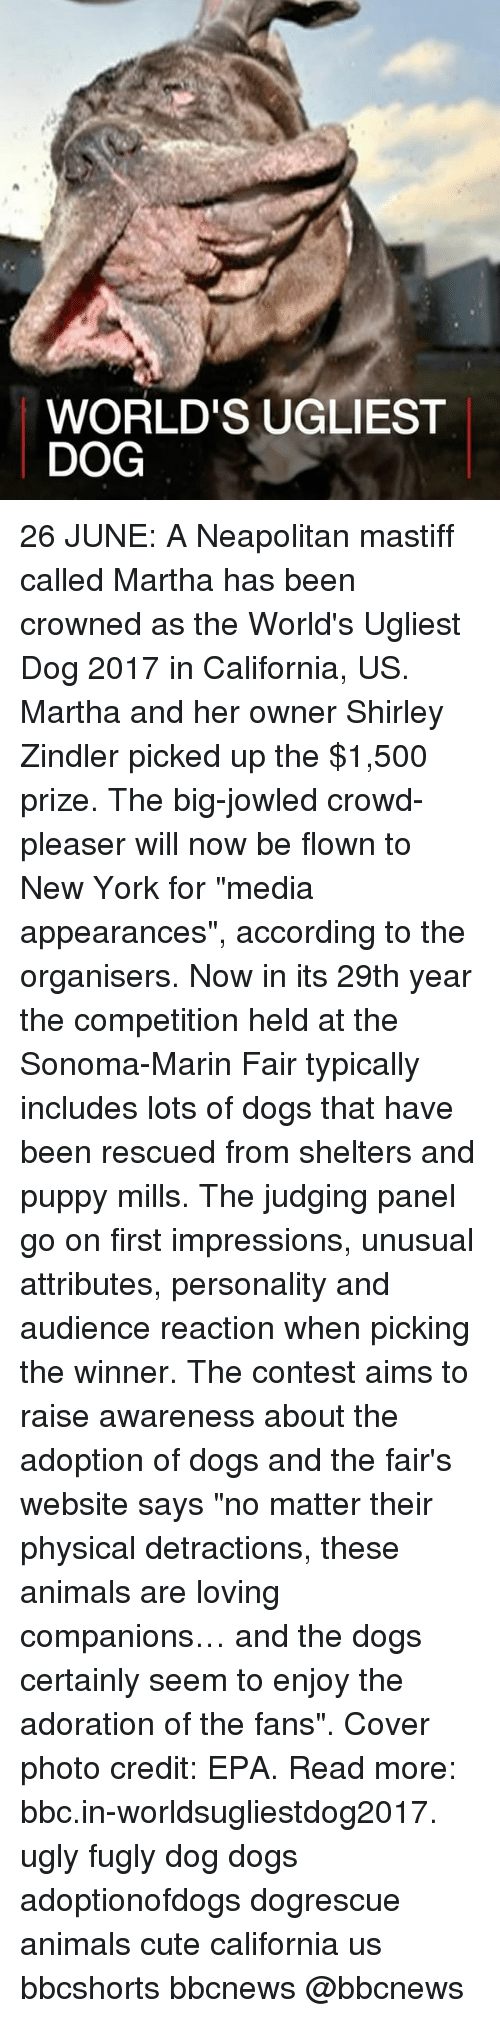 "epa: WORLD'S UGLIEST  DOG 26 JUNE: A Neapolitan mastiff called Martha has been crowned as the World's Ugliest Dog 2017 in California, US. Martha and her owner Shirley Zindler picked up the $1,500 prize. The big-jowled crowd-pleaser will now be flown to New York for ""media appearances"", according to the organisers. Now in its 29th year the competition held at the Sonoma-Marin Fair typically includes lots of dogs that have been rescued from shelters and puppy mills. The judging panel go on first impressions, unusual attributes, personality and audience reaction when picking the winner. The contest aims to raise awareness about the adoption of dogs and the fair's website says ""no matter their physical detractions, these animals are loving companions… and the dogs certainly seem to enjoy the adoration of the fans"". Cover photo credit: EPA. Read more: bbc.in-worldsugliestdog2017. ugly fugly dog dogs adoptionofdogs dogrescue animals cute california us bbcshorts bbcnews @bbcnews"